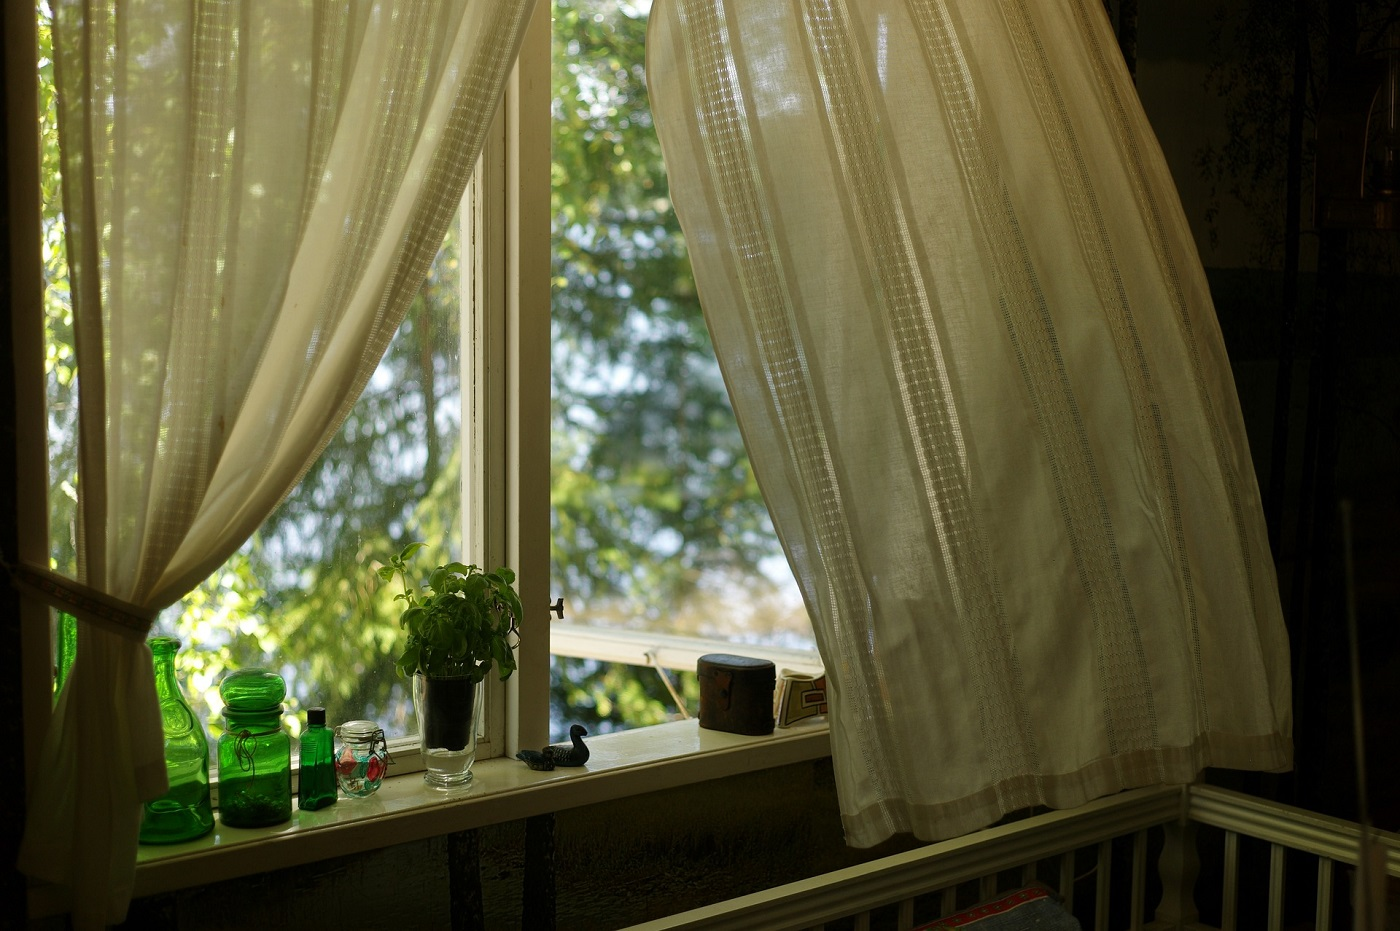 Sunshine coming into home through curtains - 9 ways to determine whether your home is eco-friendly or not